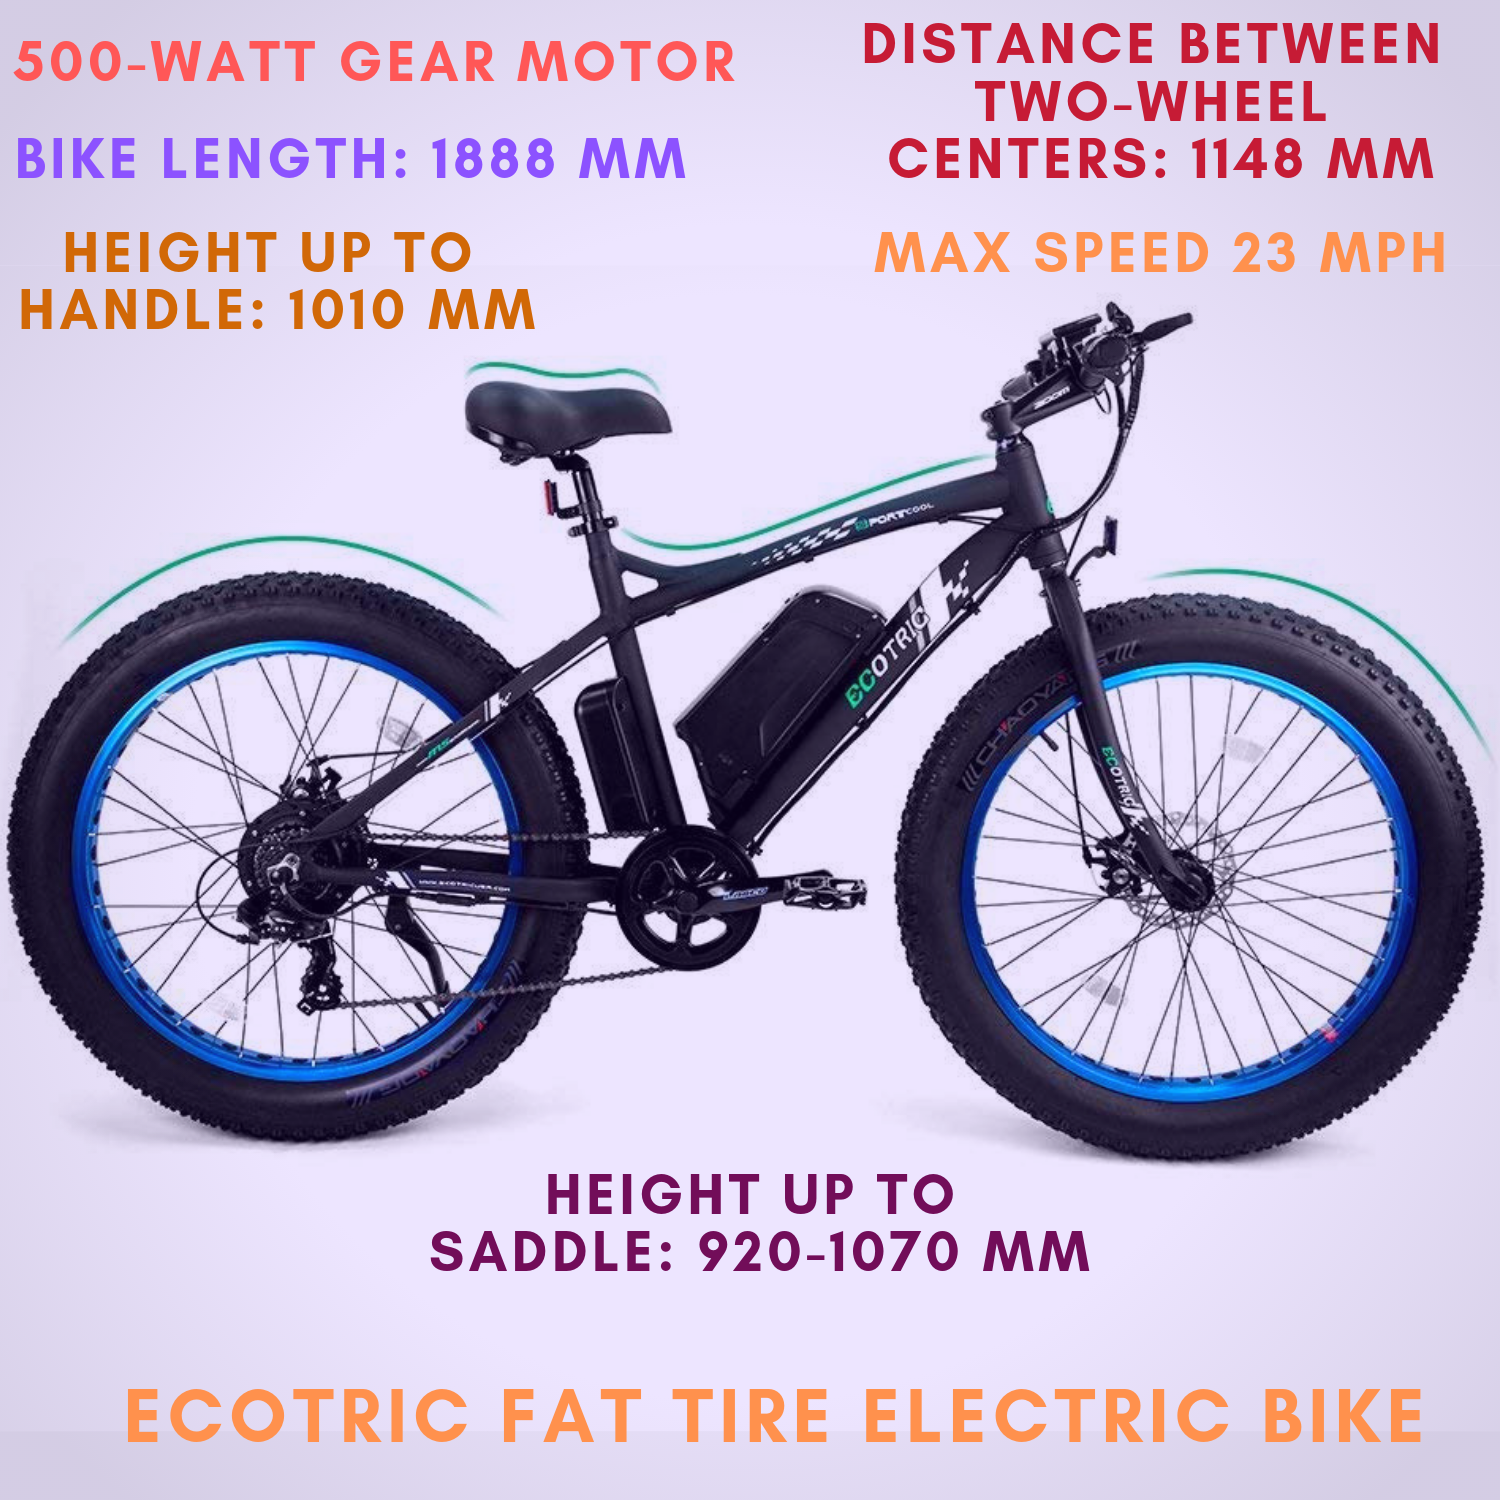 7 Best Mountain Bike For Hunting Top Models Reviewd 2020